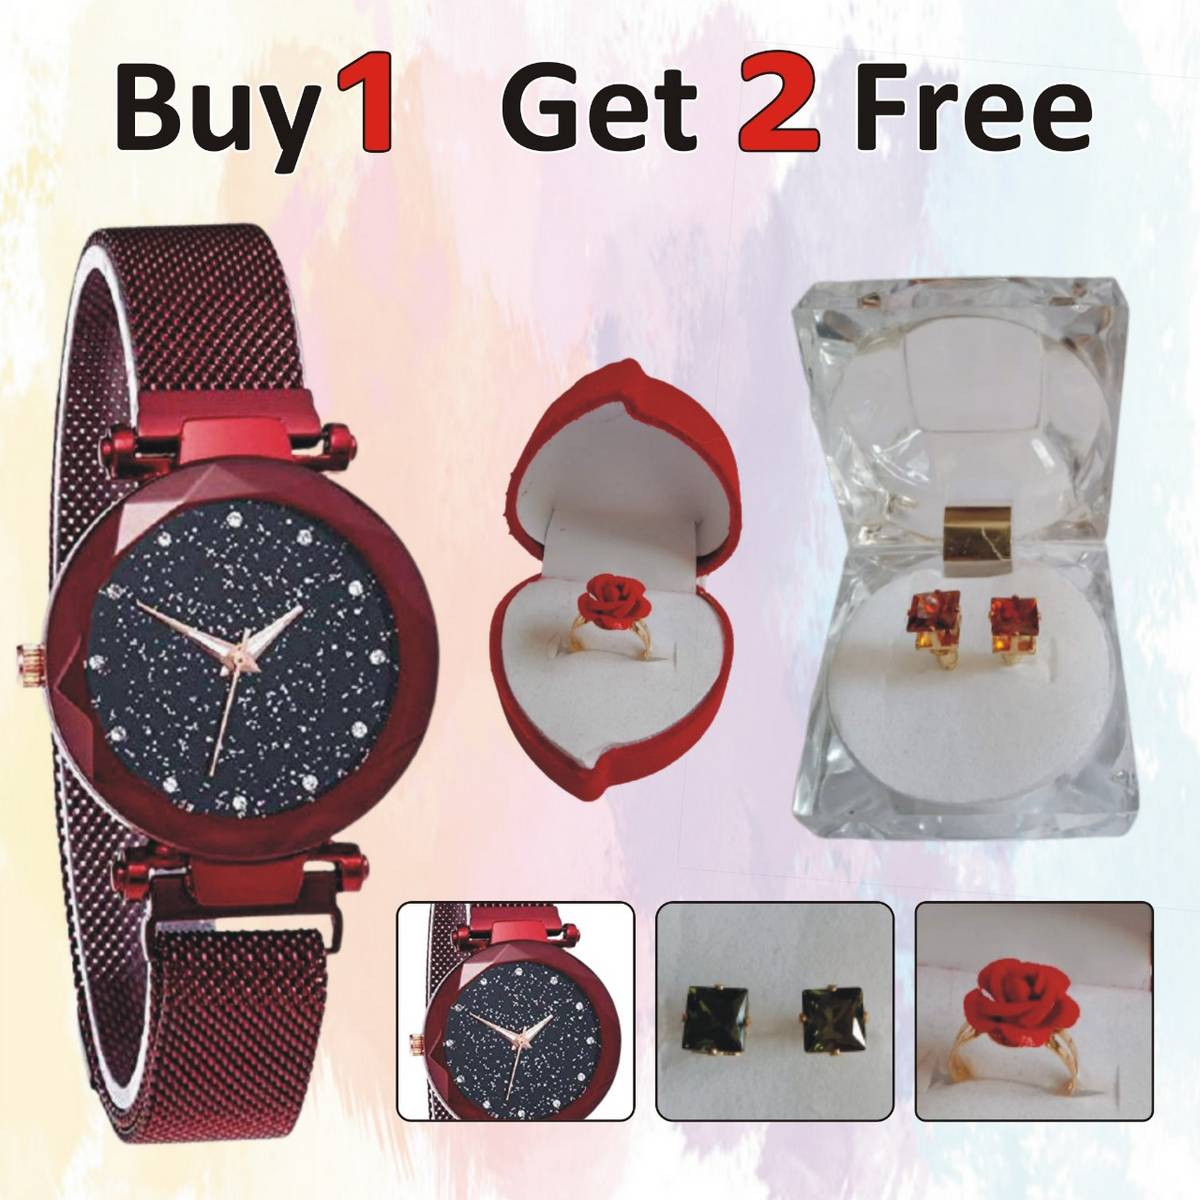 Pack of 3 Gifts, Female Magnet Mesh Luxury Watch + Rose Ring + 1 Pair of Earrings / Studs, Suitable for Eid Gift, Birthday, Engagement, Wedding, Graduation, Valentine etc